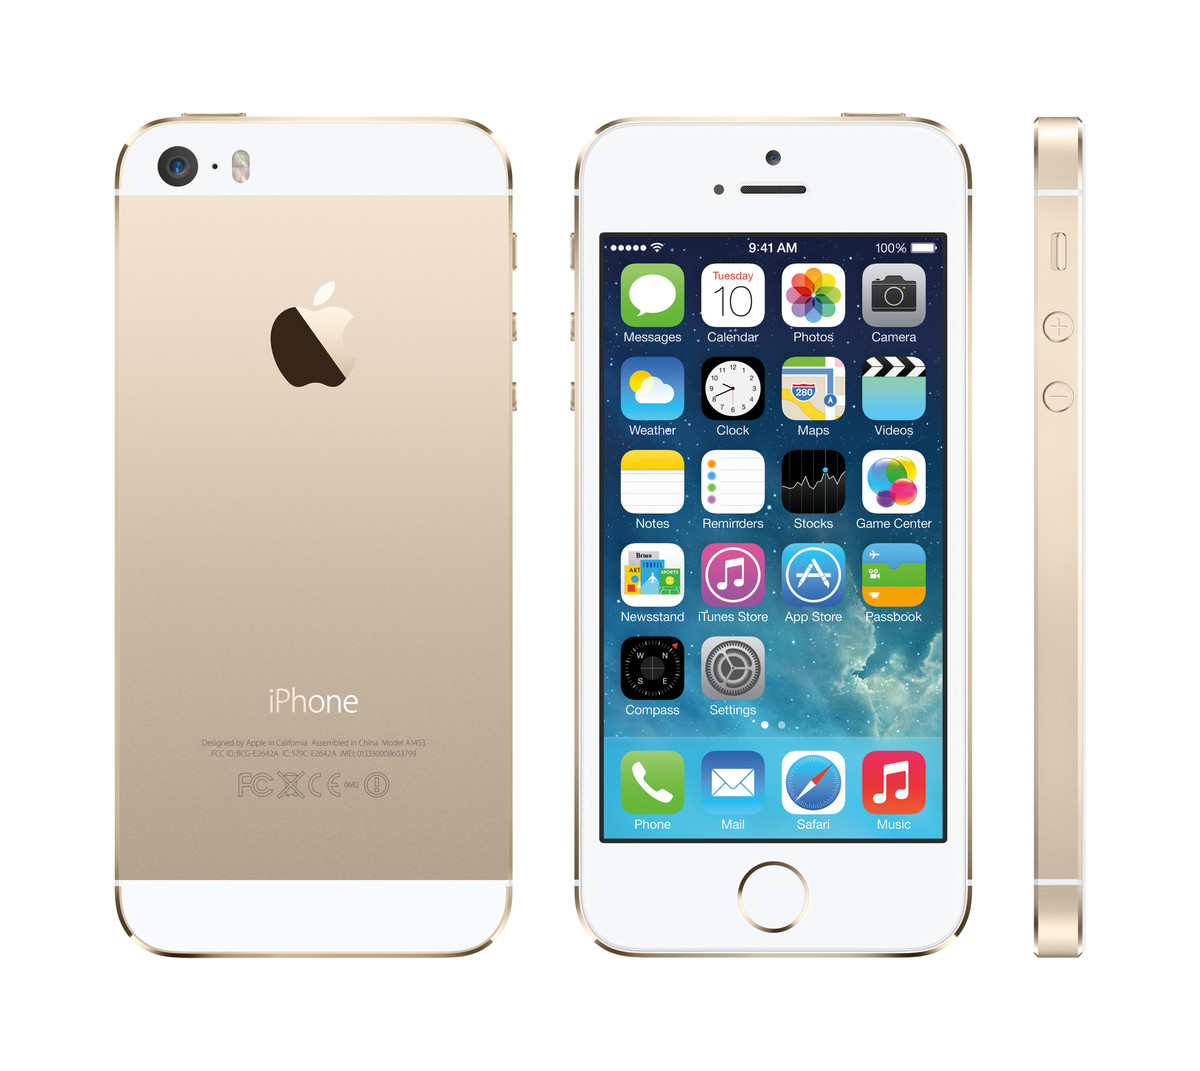 Apple to accept iPhone 5s pre-orders...in Hong Kong